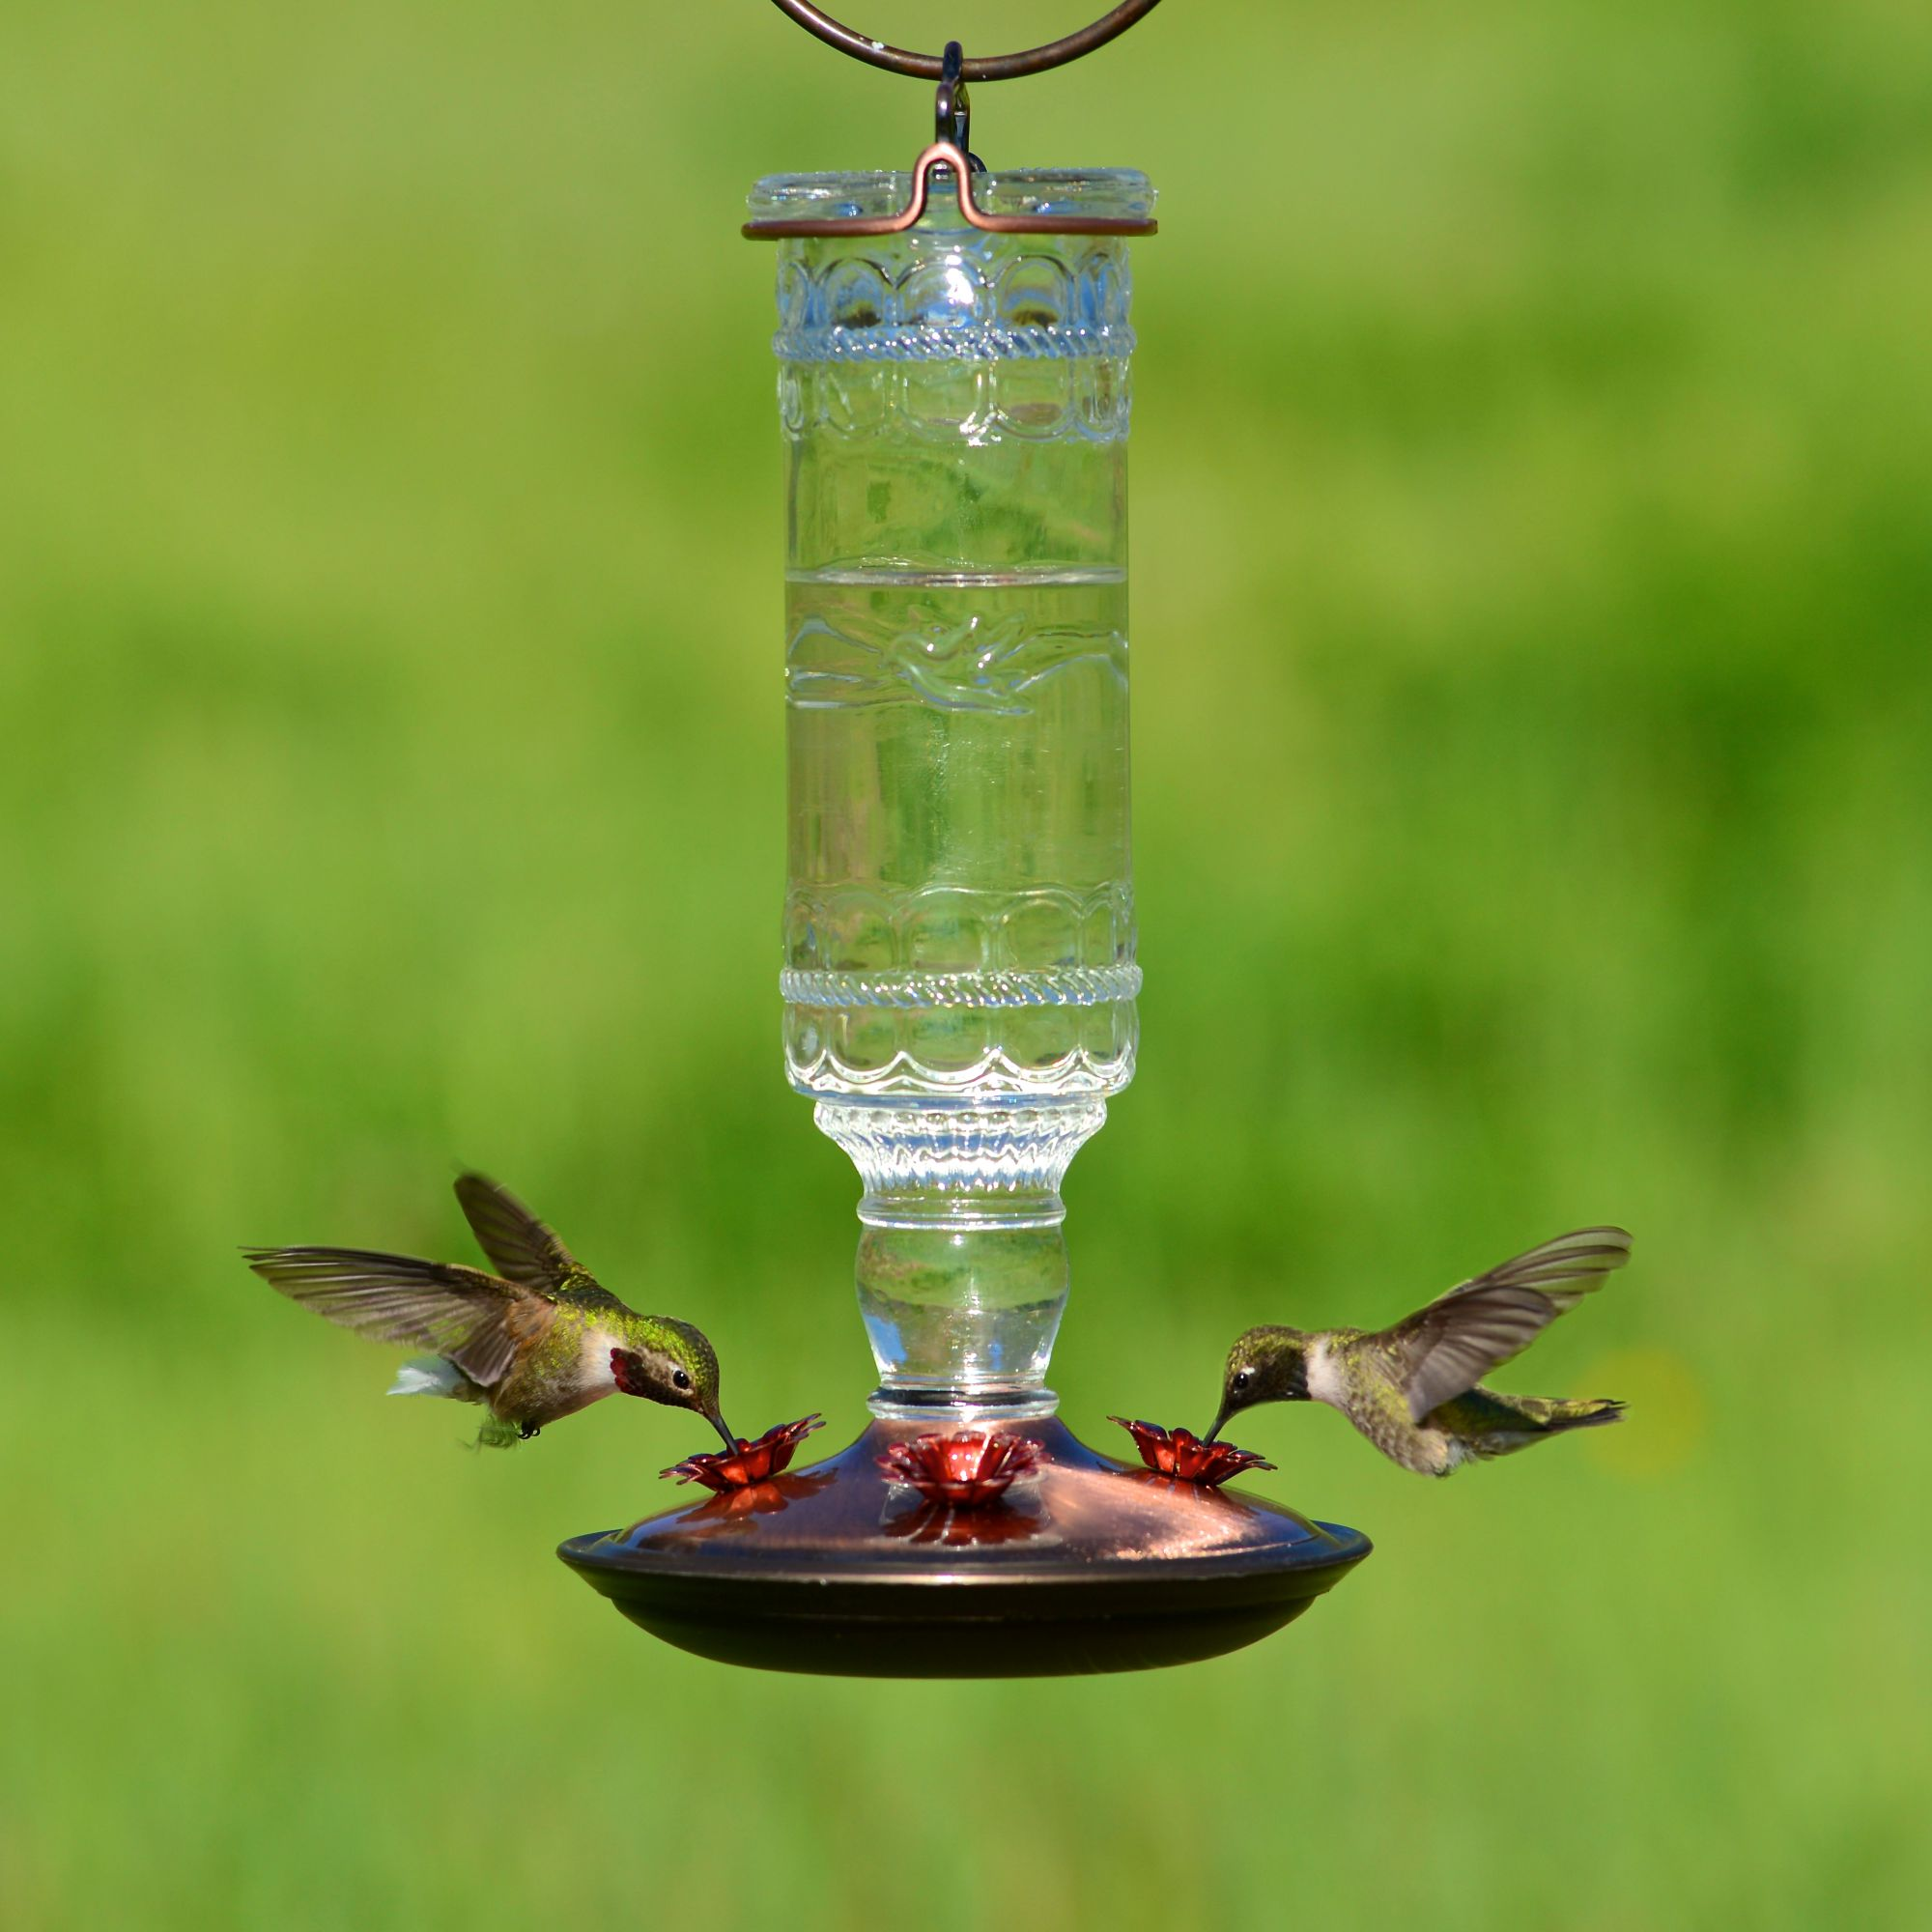 k blossom pet birdscapes feeders decorative wayfair hummingbird perky edition feeder glass